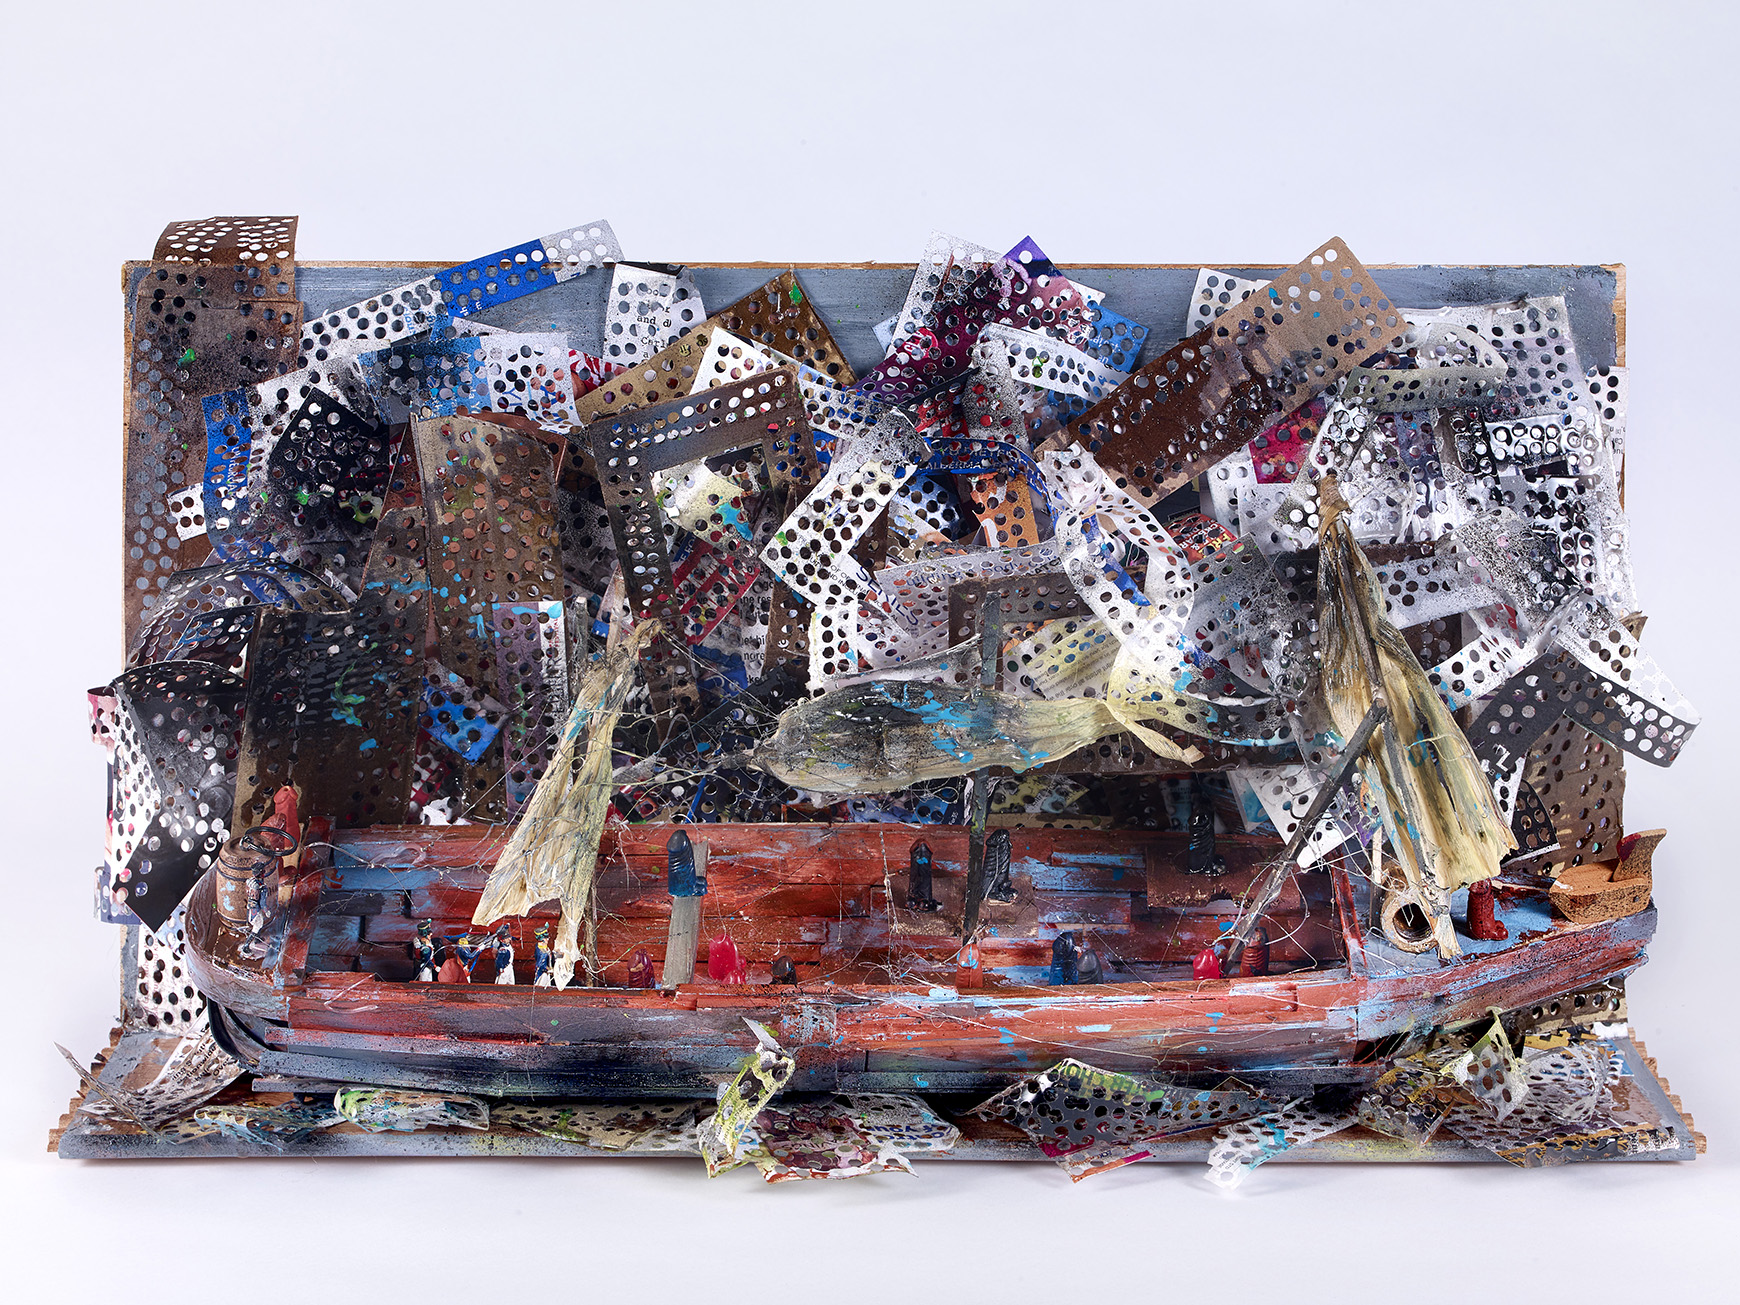 Chicago artist Marvin Tate's miniature worlds showcase his commentary on societal issues--7/26/19